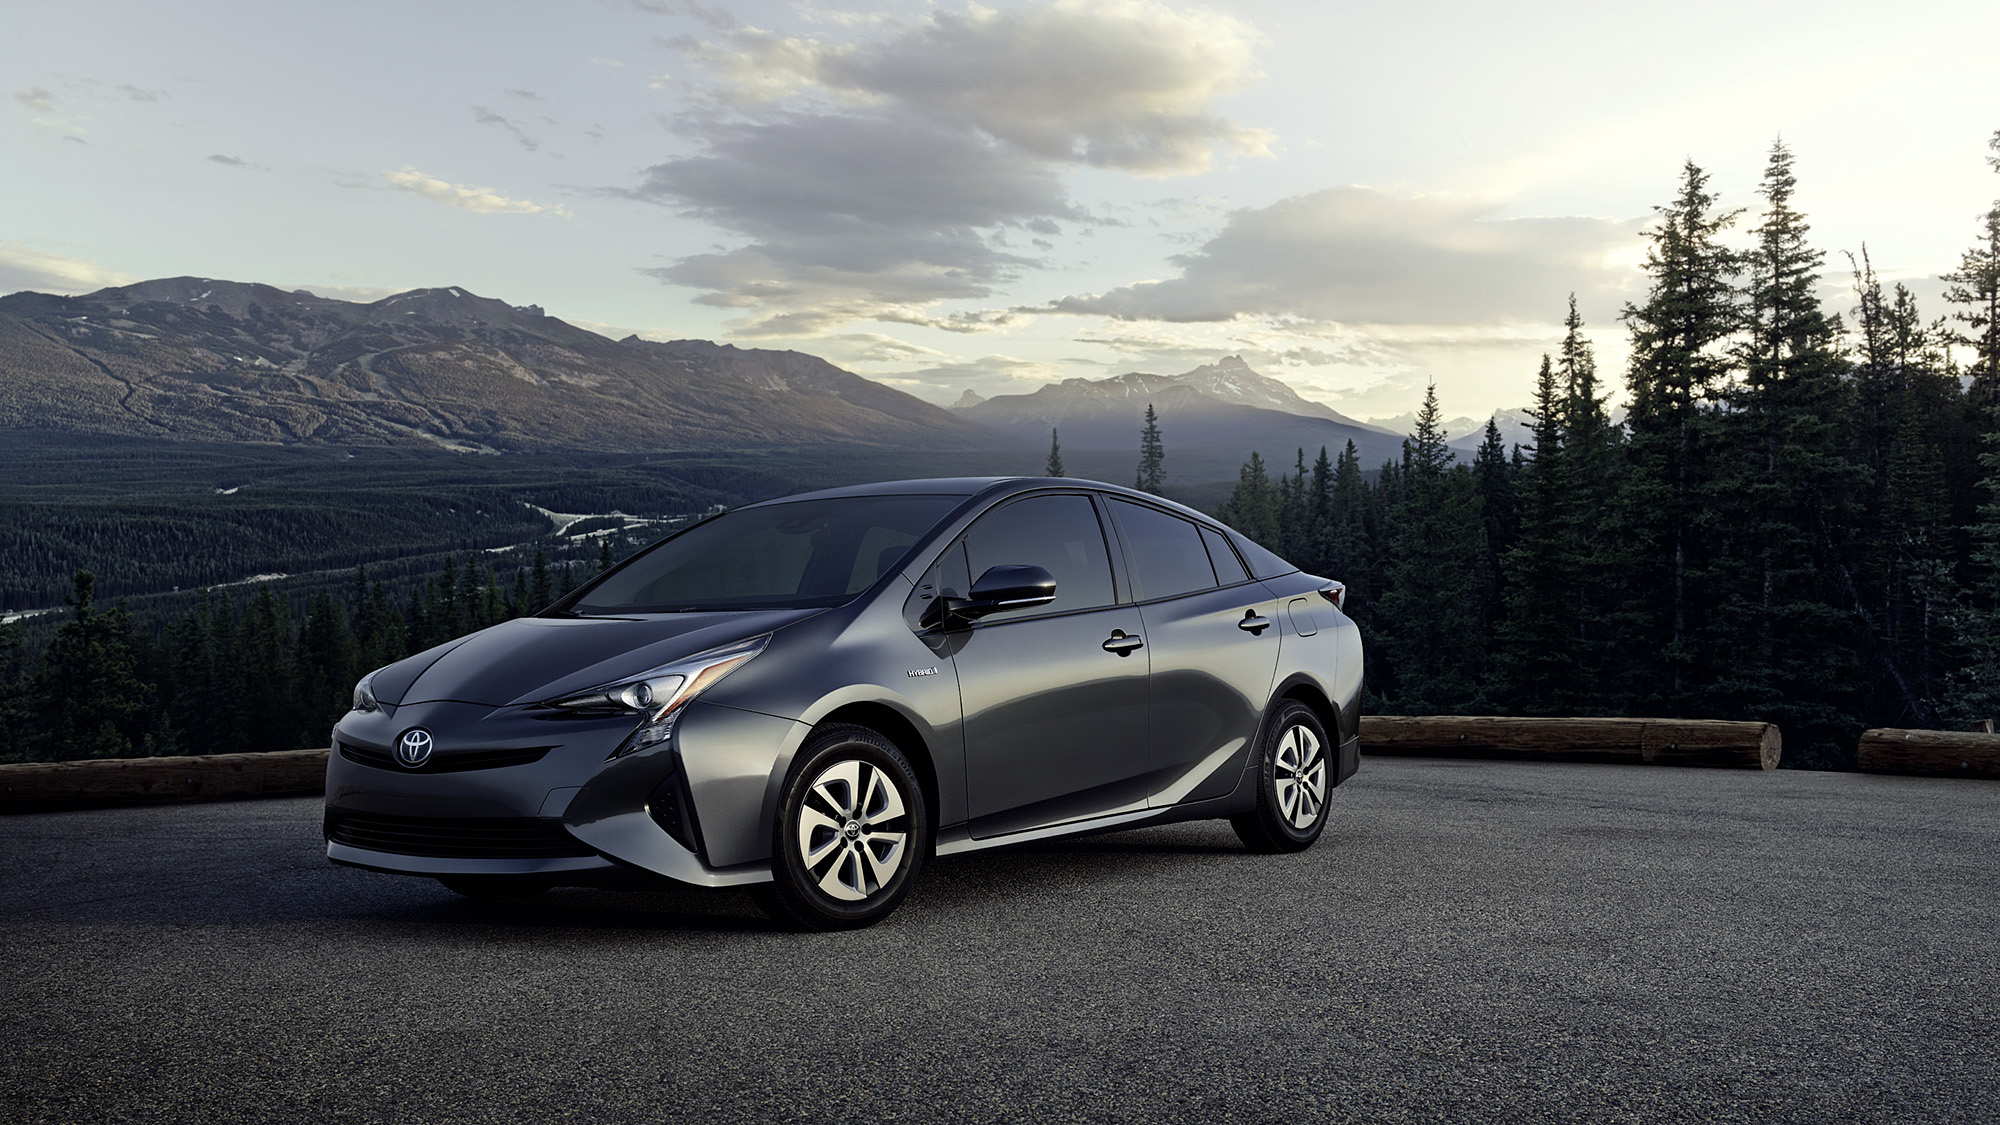 dw_1709_prius_beauty_04_comp_w6